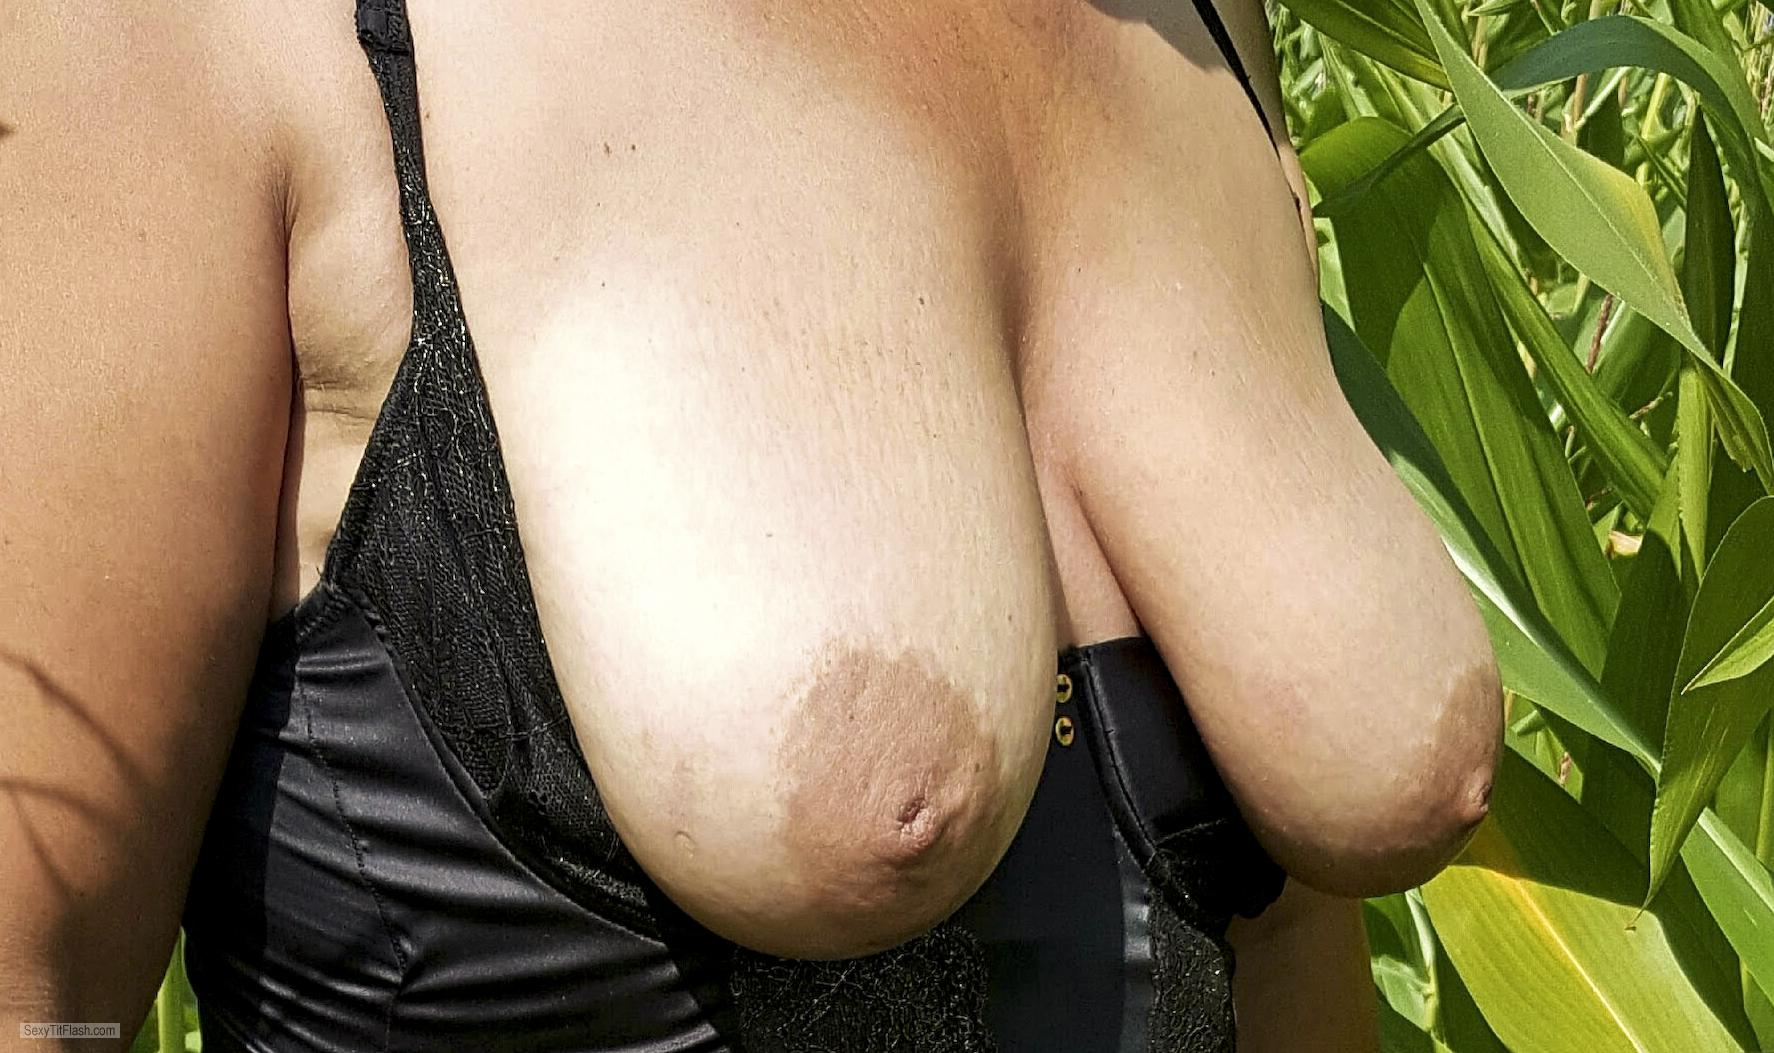 Tit Flash: Girlfriend's Big Tits - Darter from United Kingdom